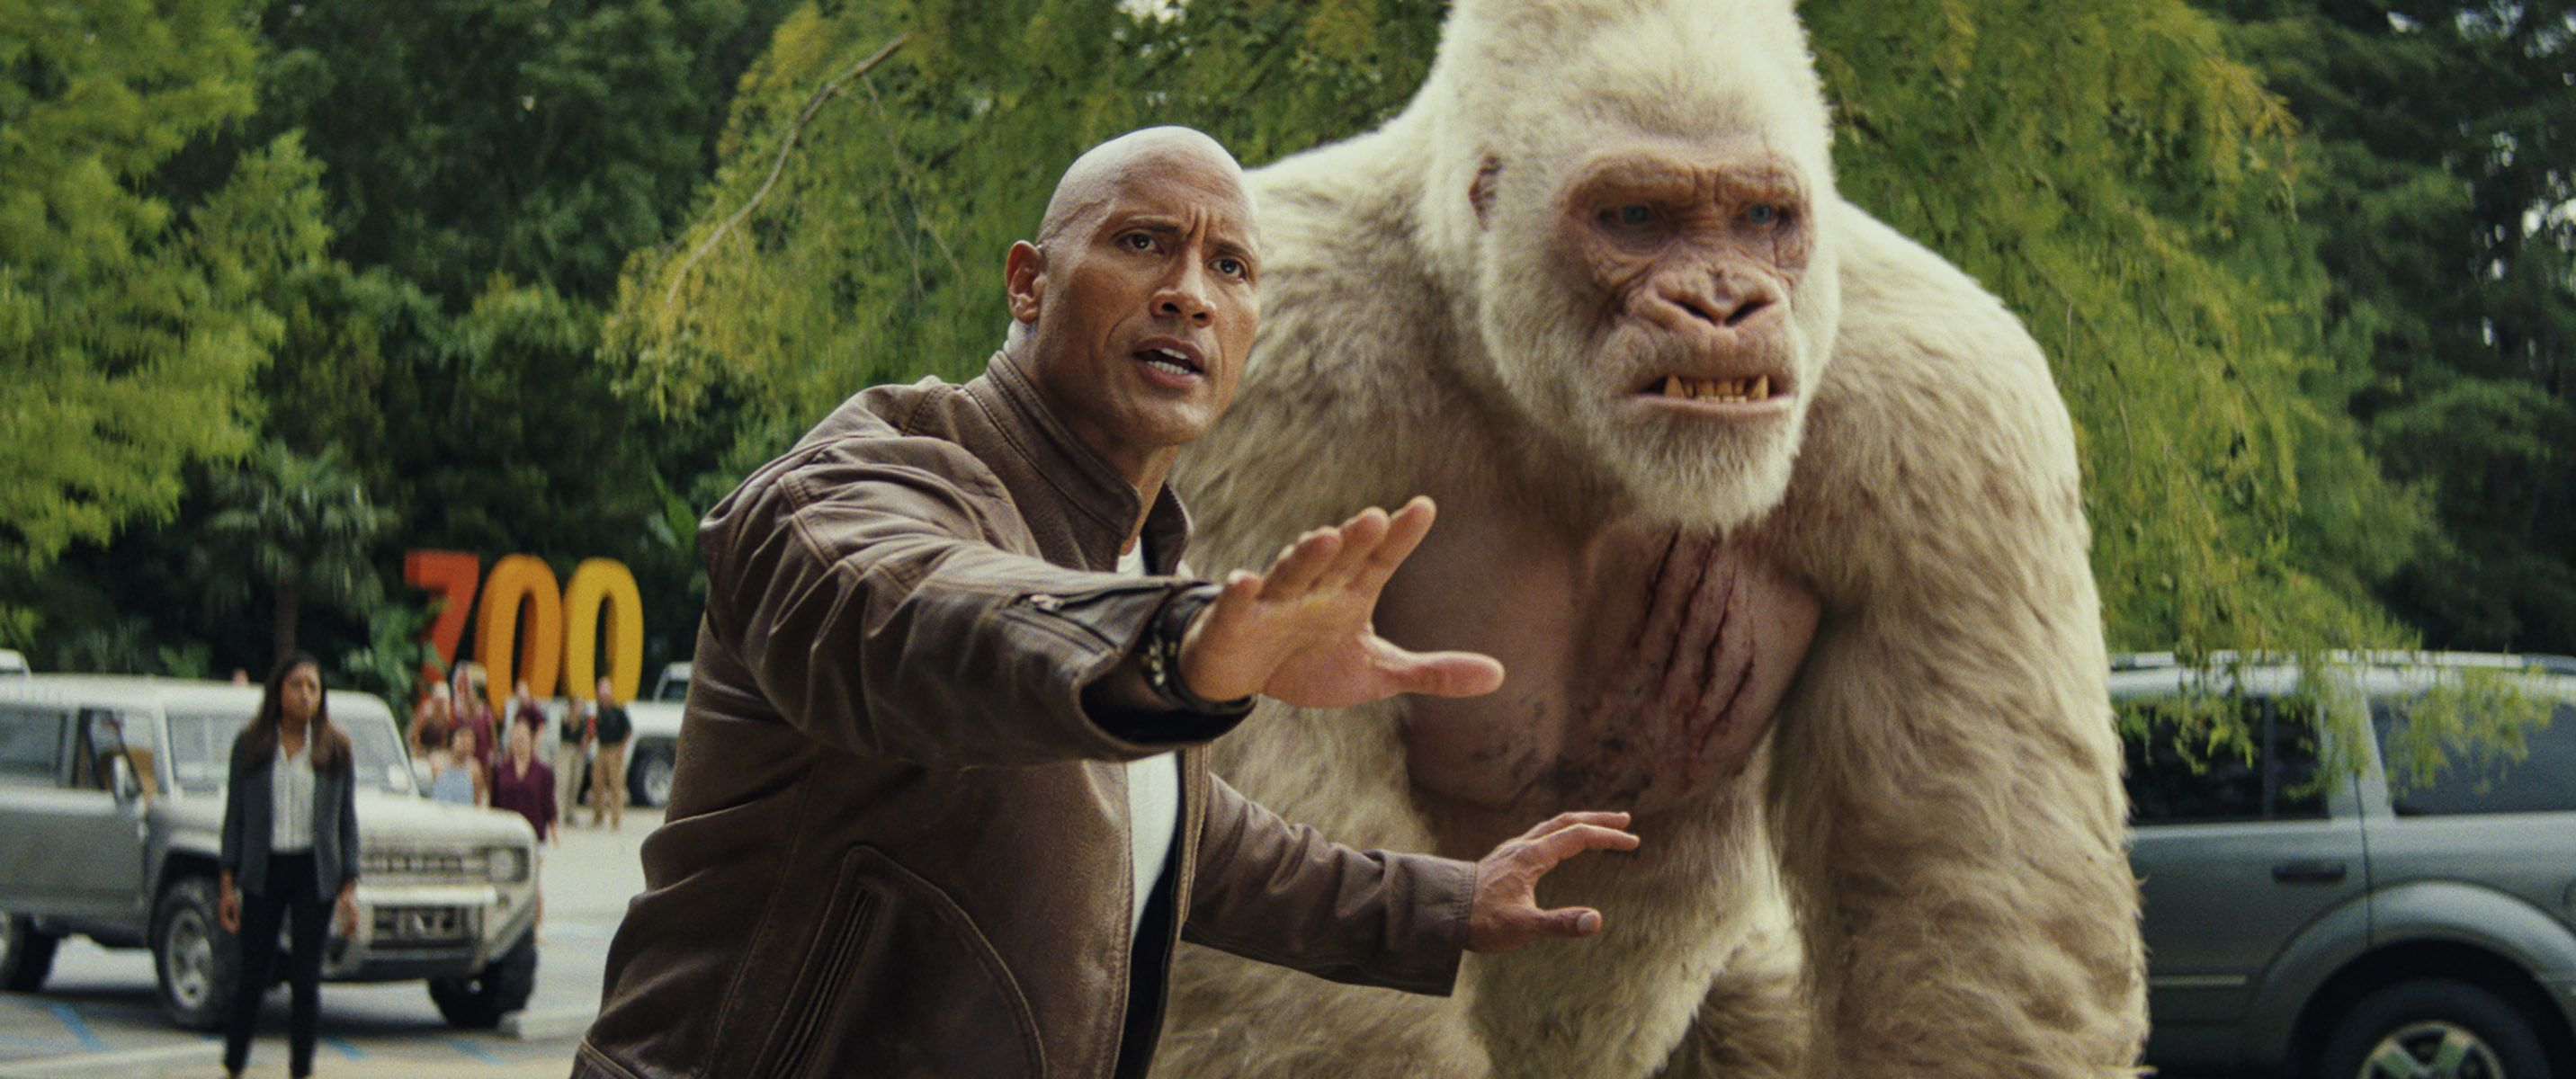 Rampage Review Dwayne Johnson Upstaged By A Giant Gorilla